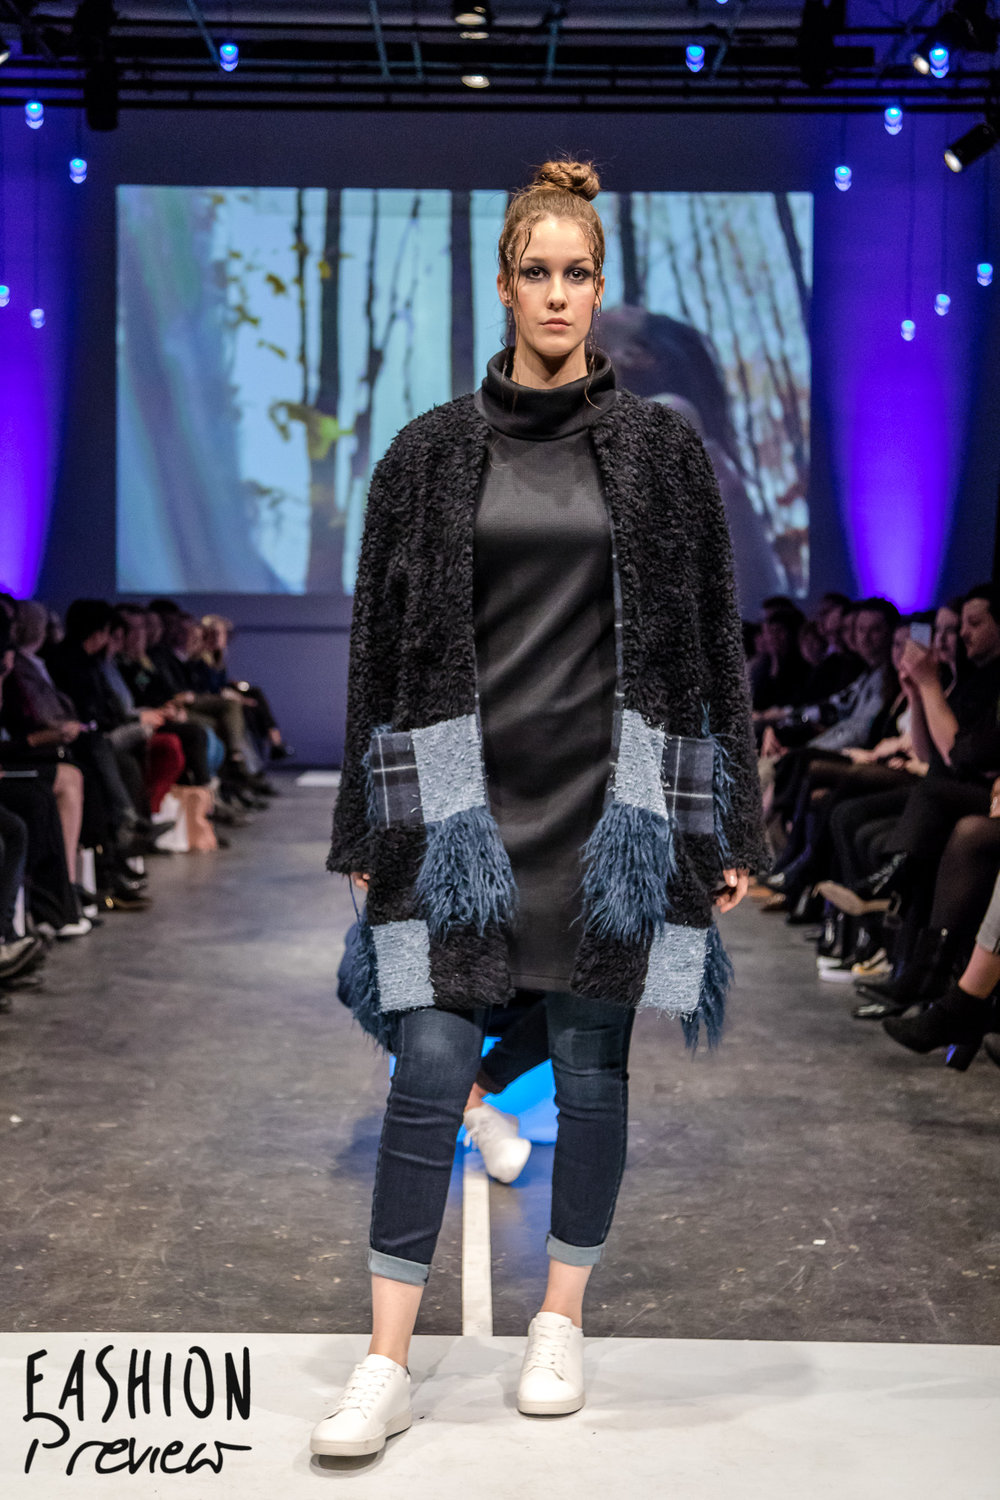 Fashion Preview 9 - Cegep Marie Victorin-19.jpg